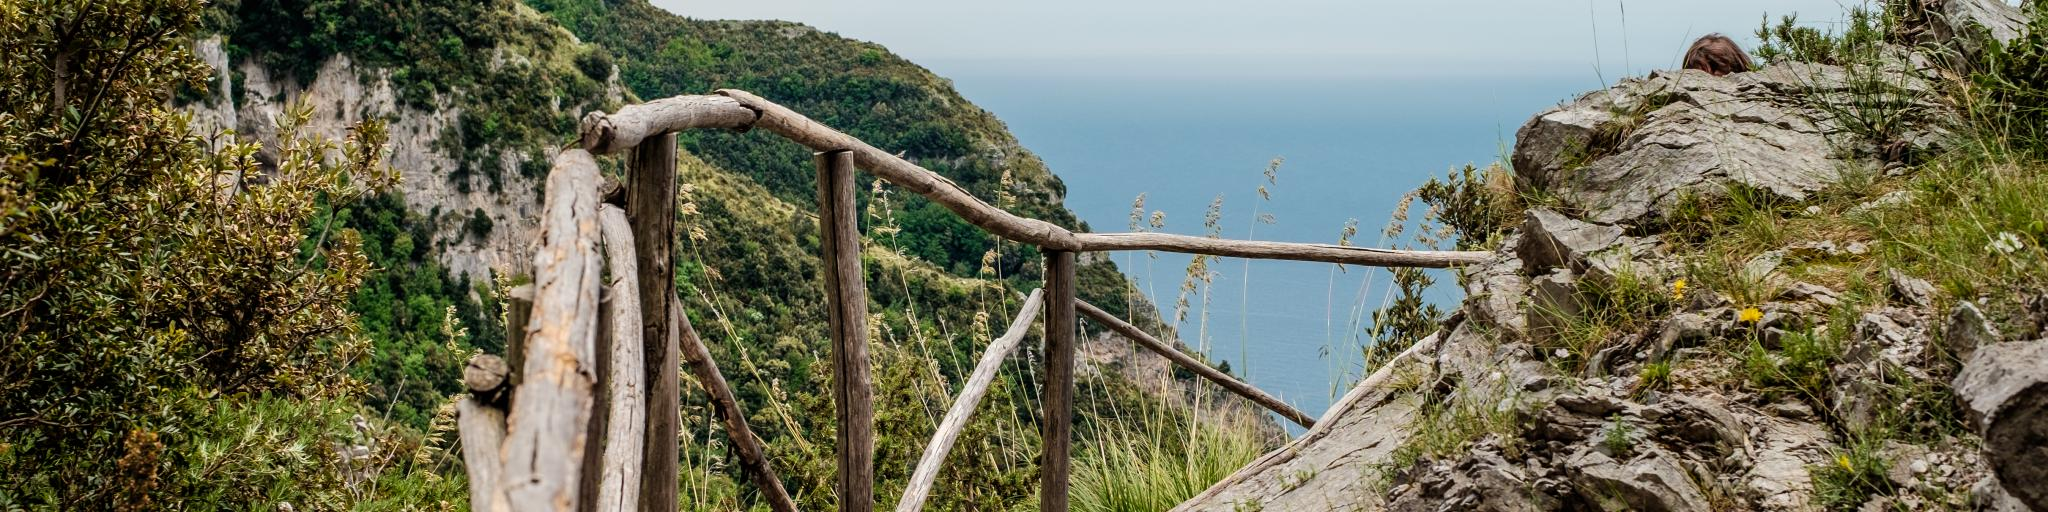 Spectacular sea views and meandering walkways along the Path of the Gods